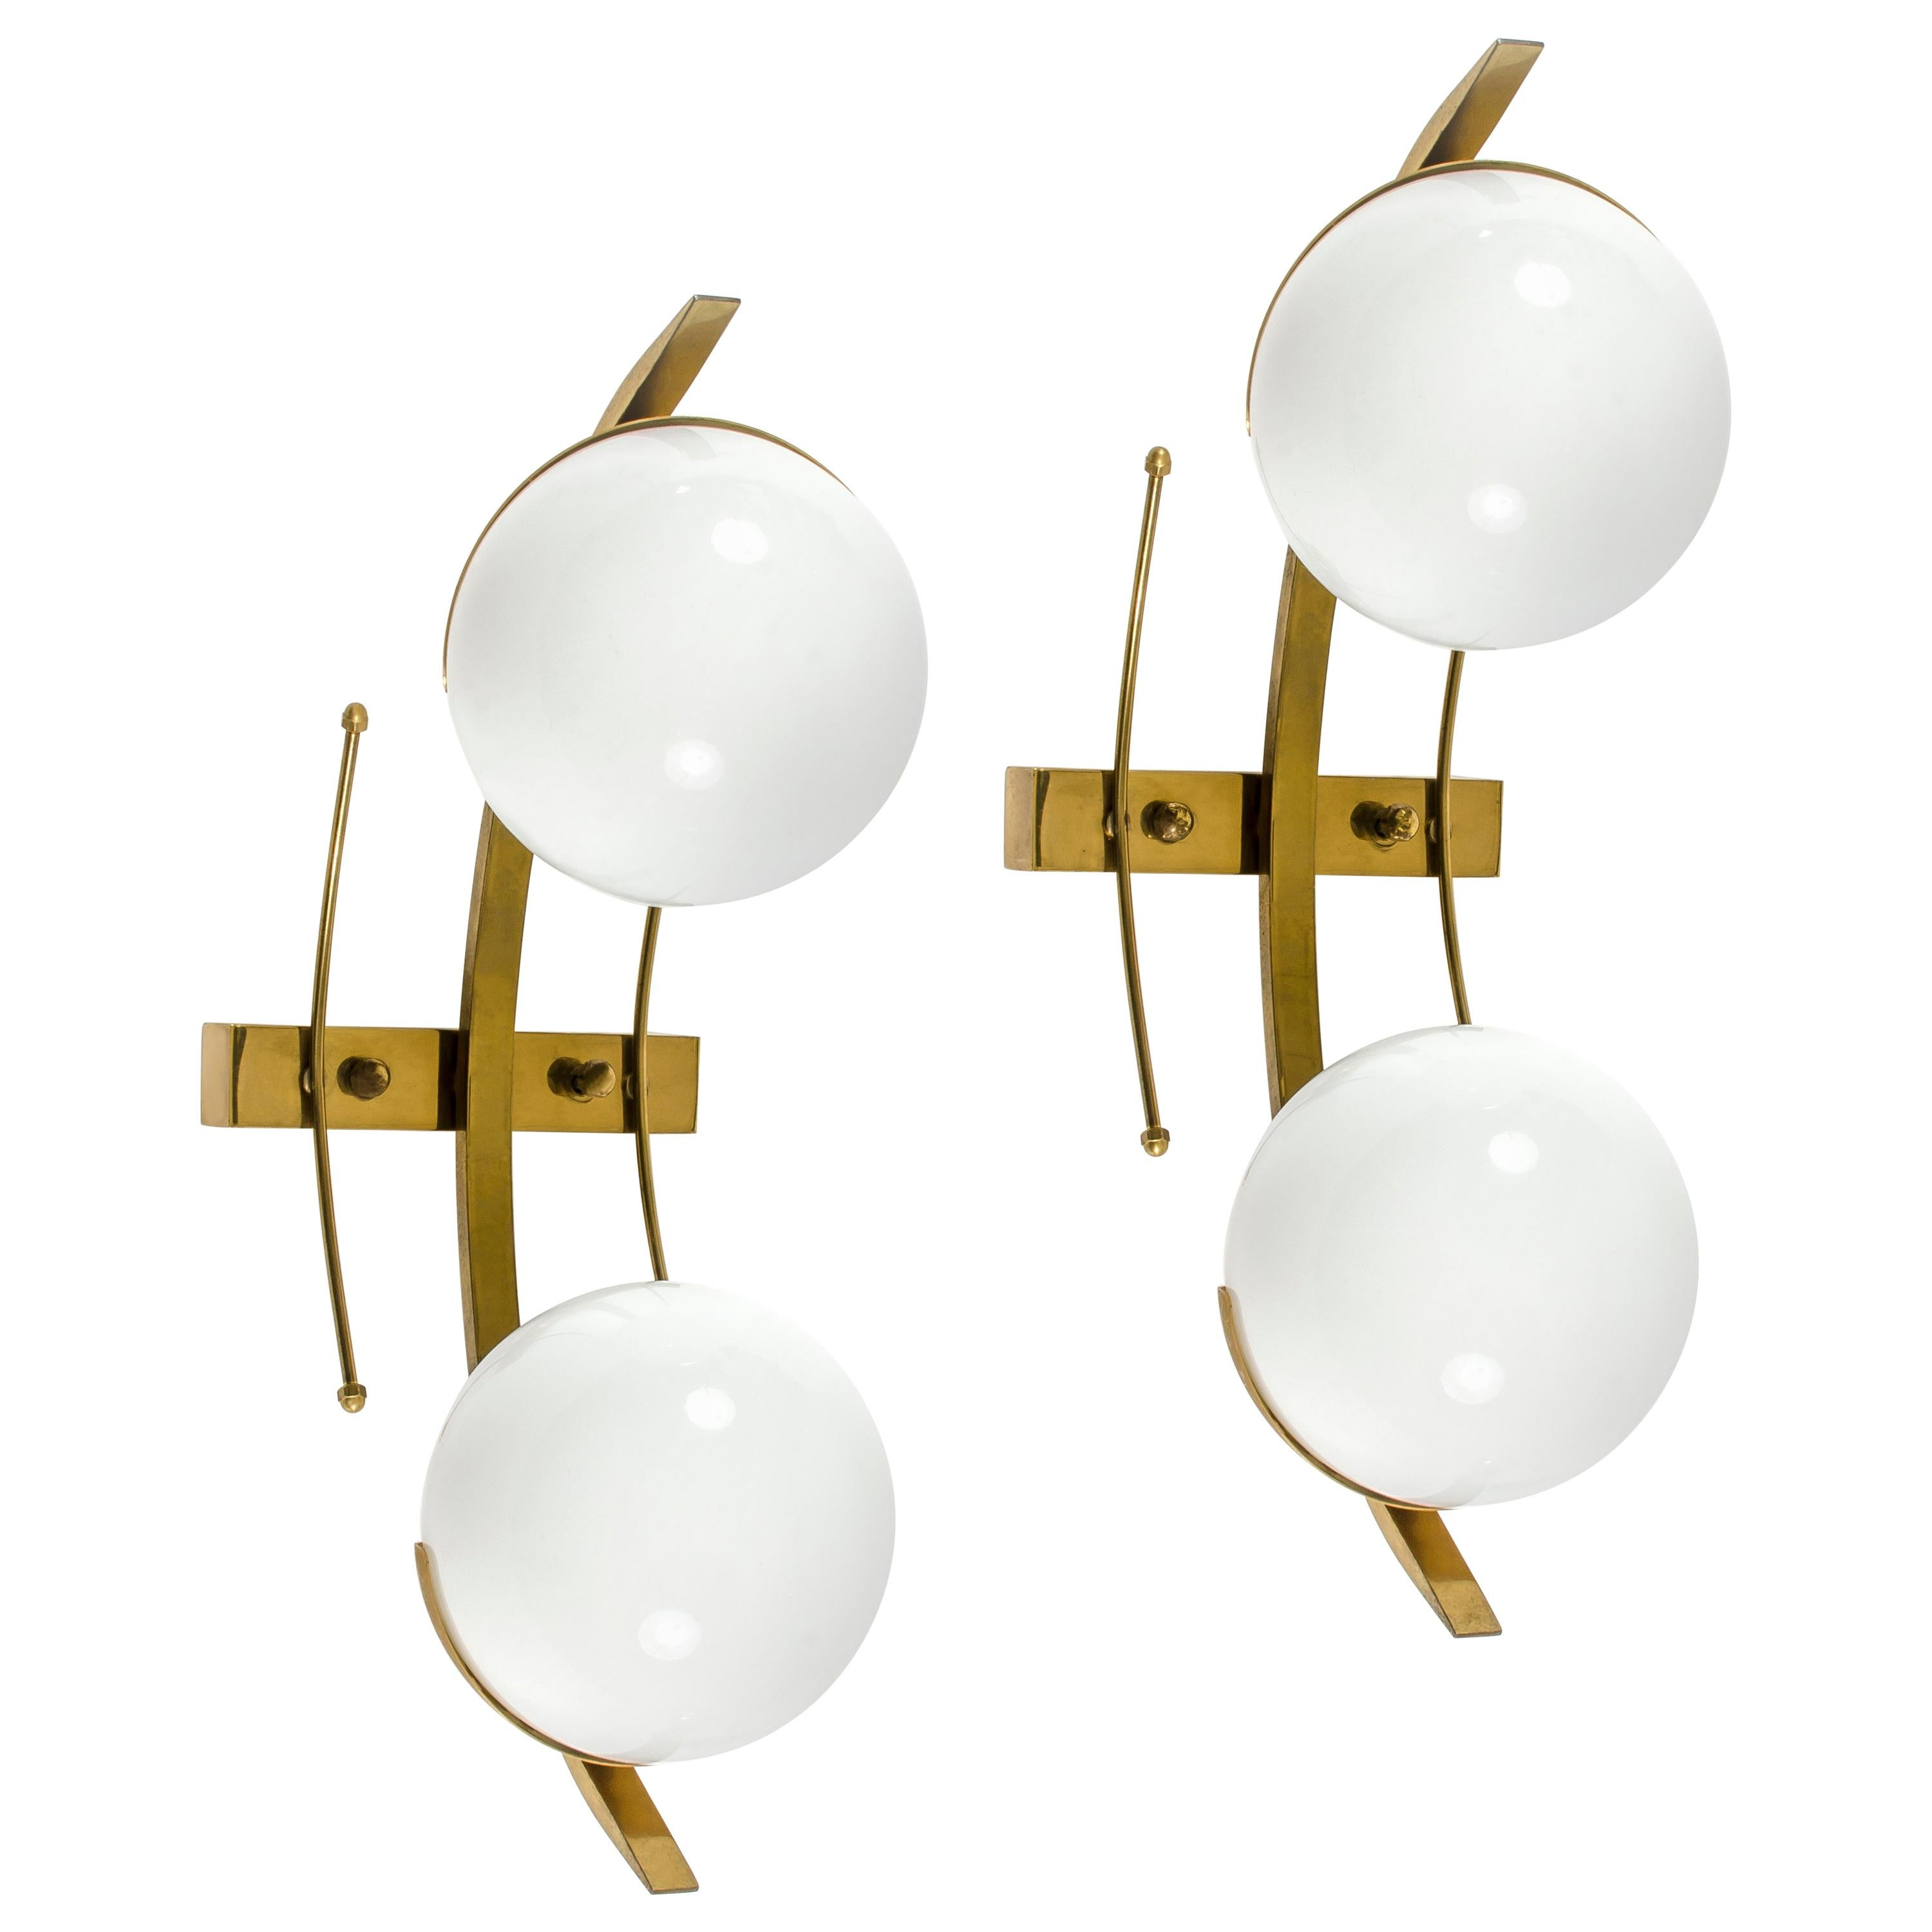 Italian Wall Lights or Sconces Attributed to Stilnovo